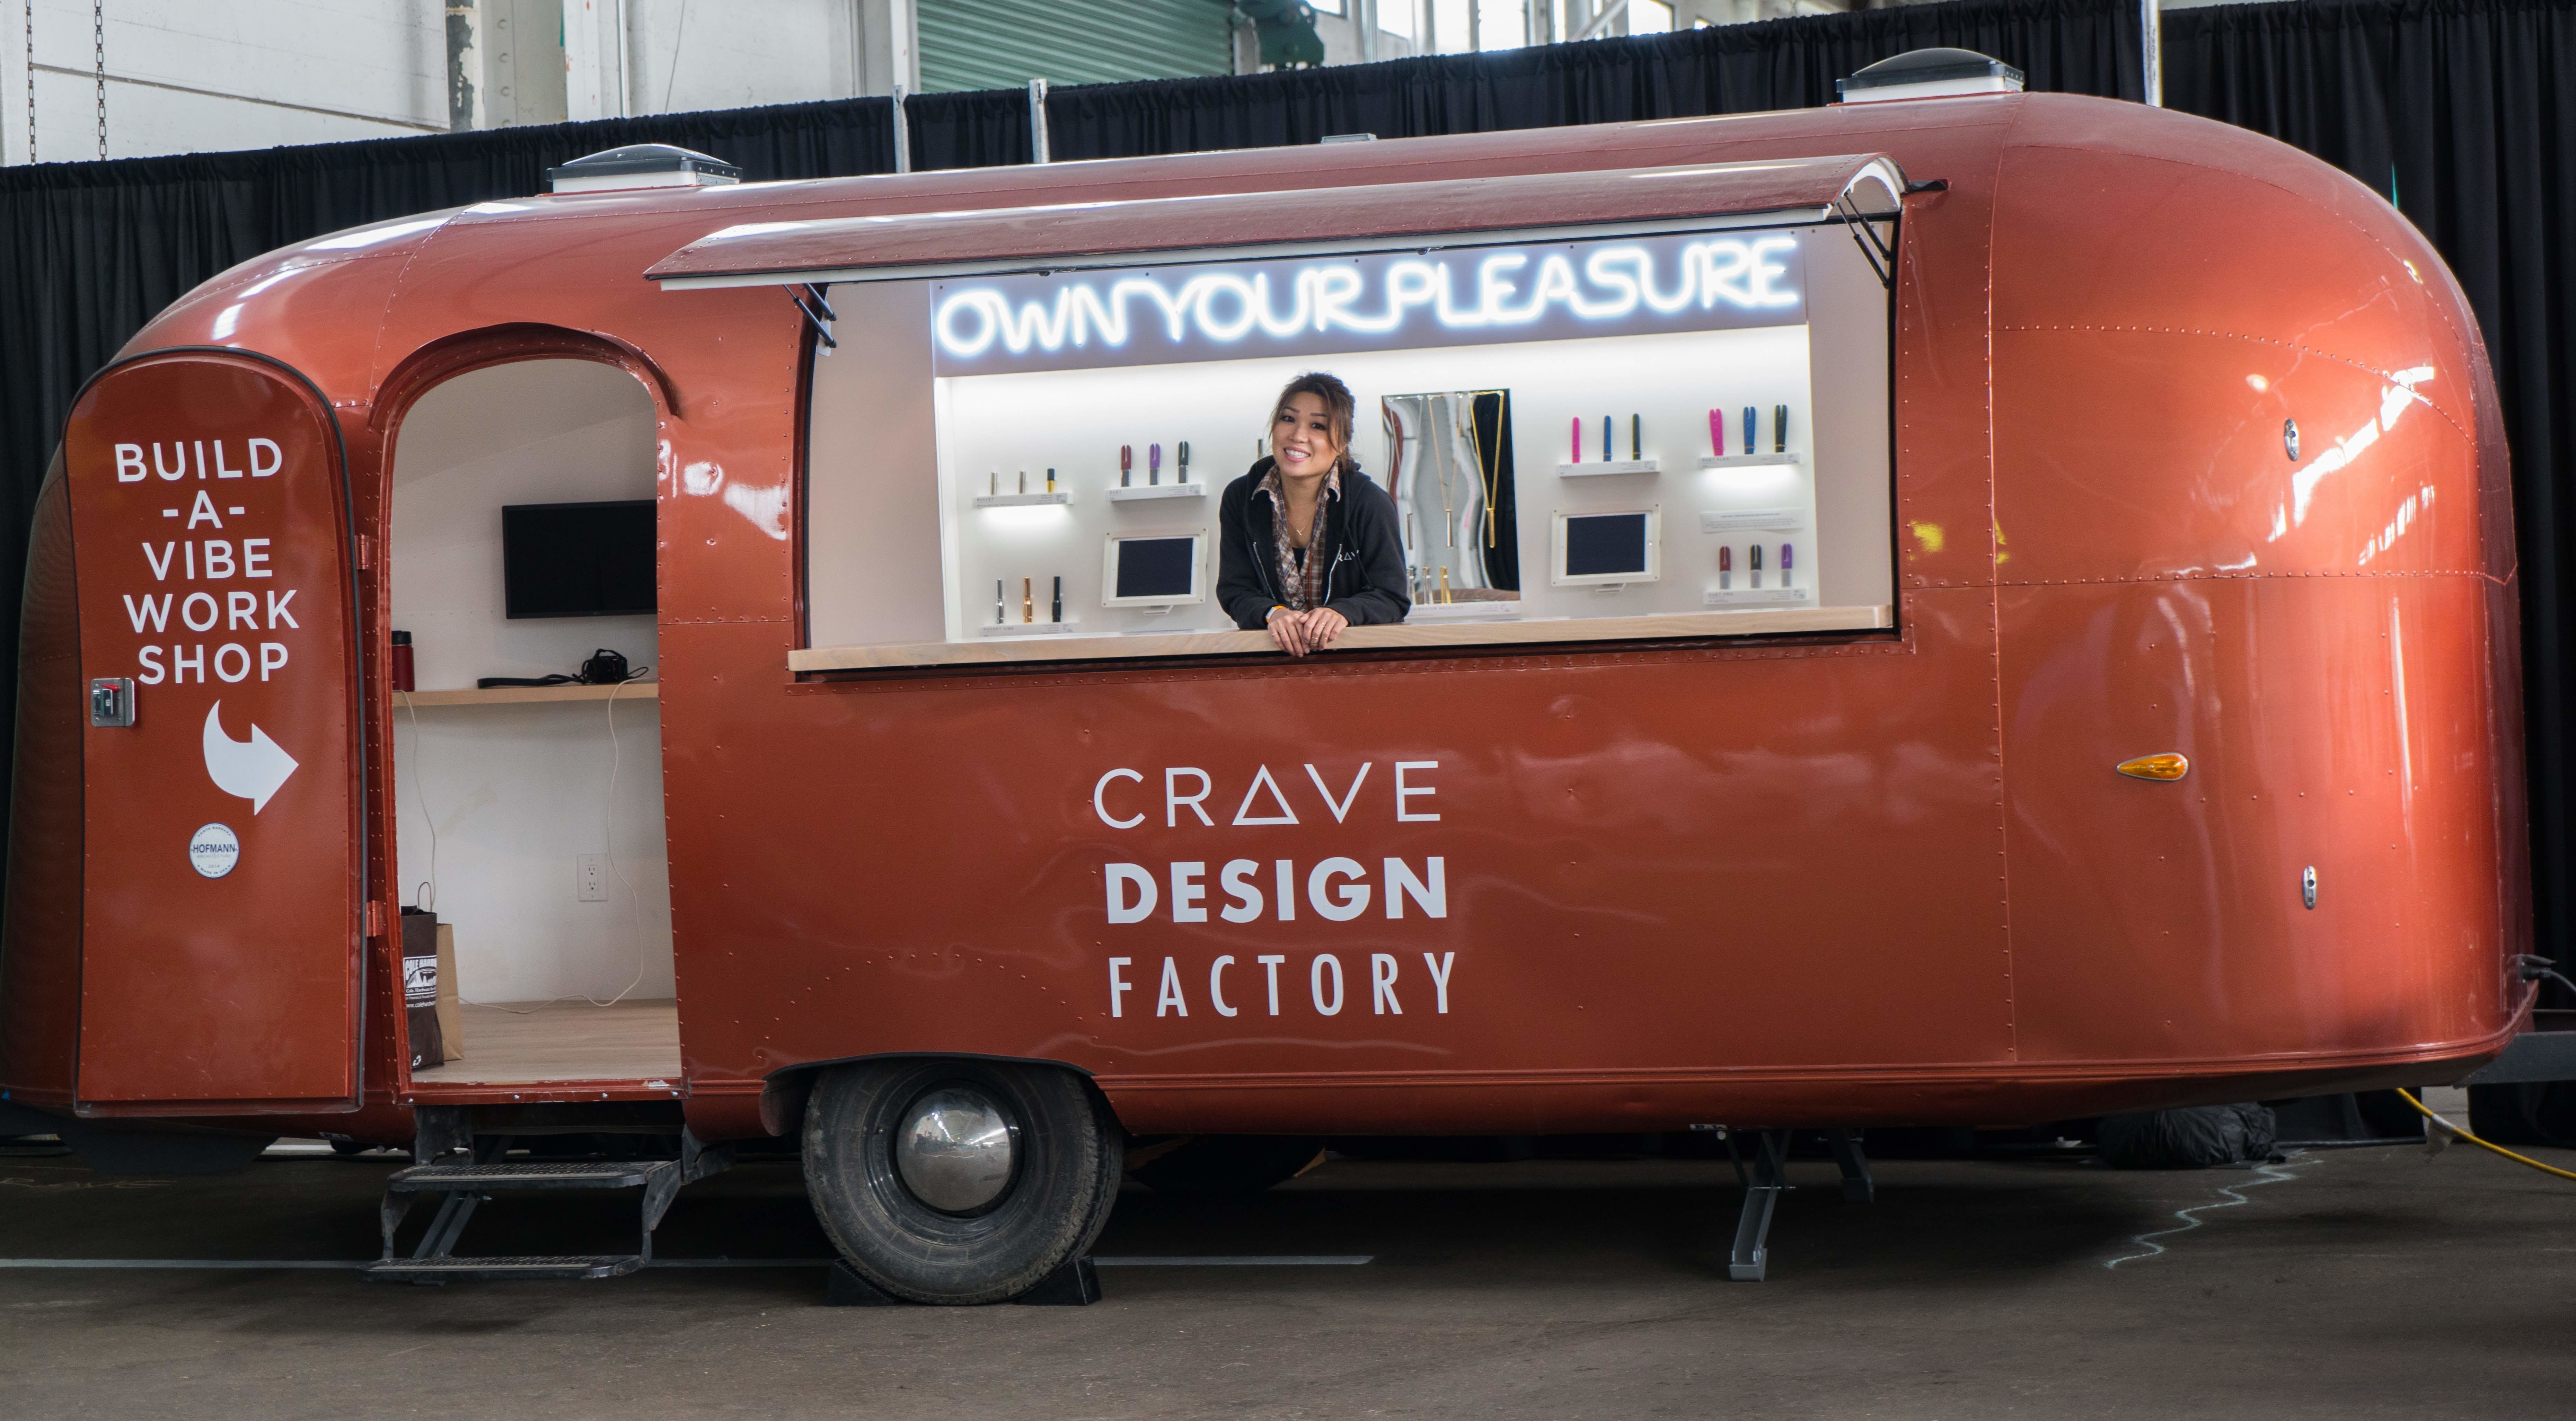 Ti Chang and the Crave Design Factory.